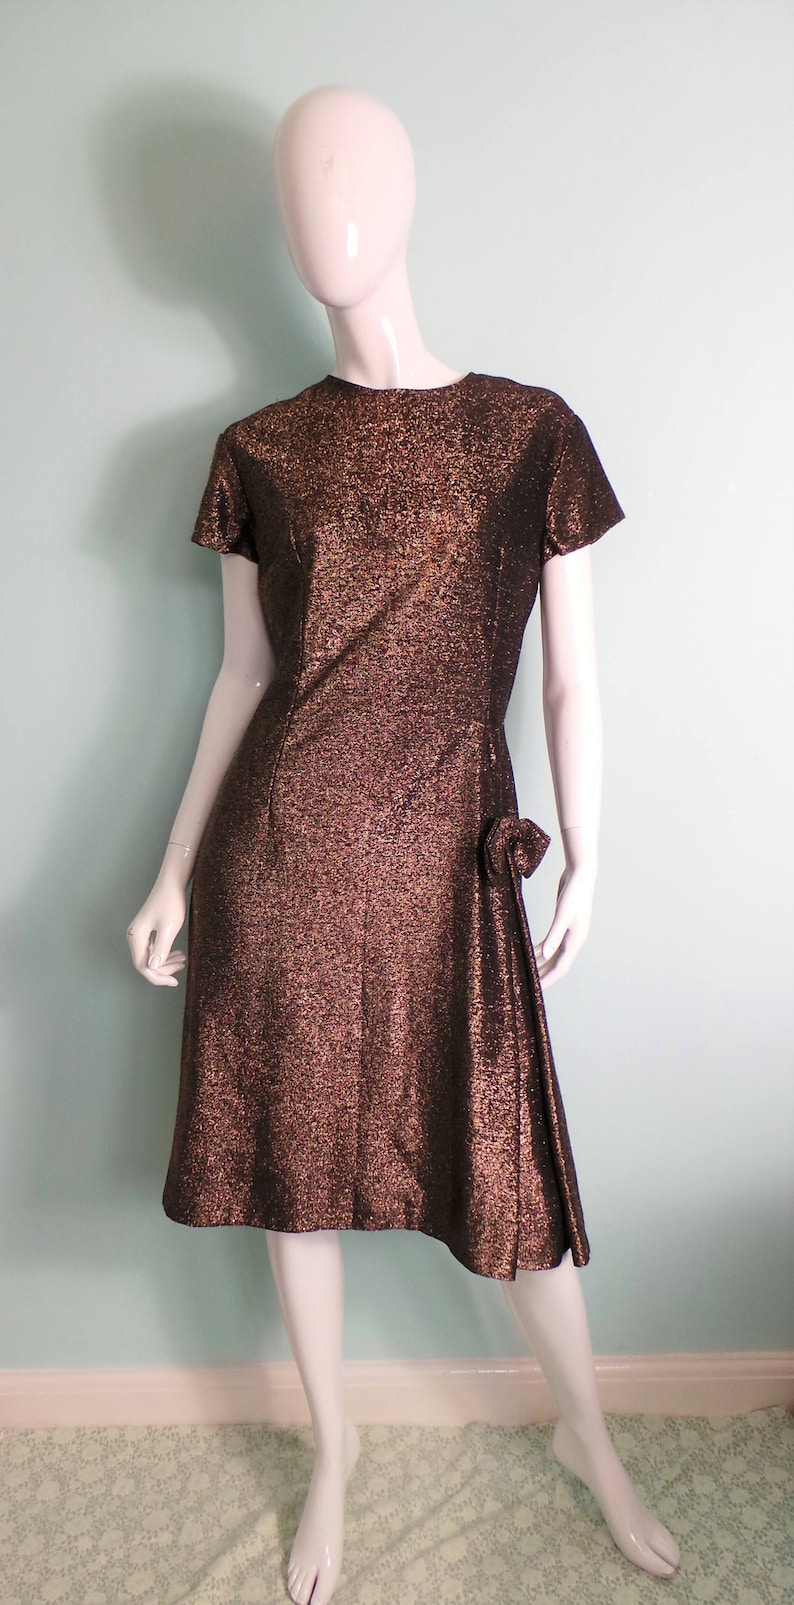 66b1f1e6532 1960s Gold Lame Party Dress with Bow Copper Sparkle Short